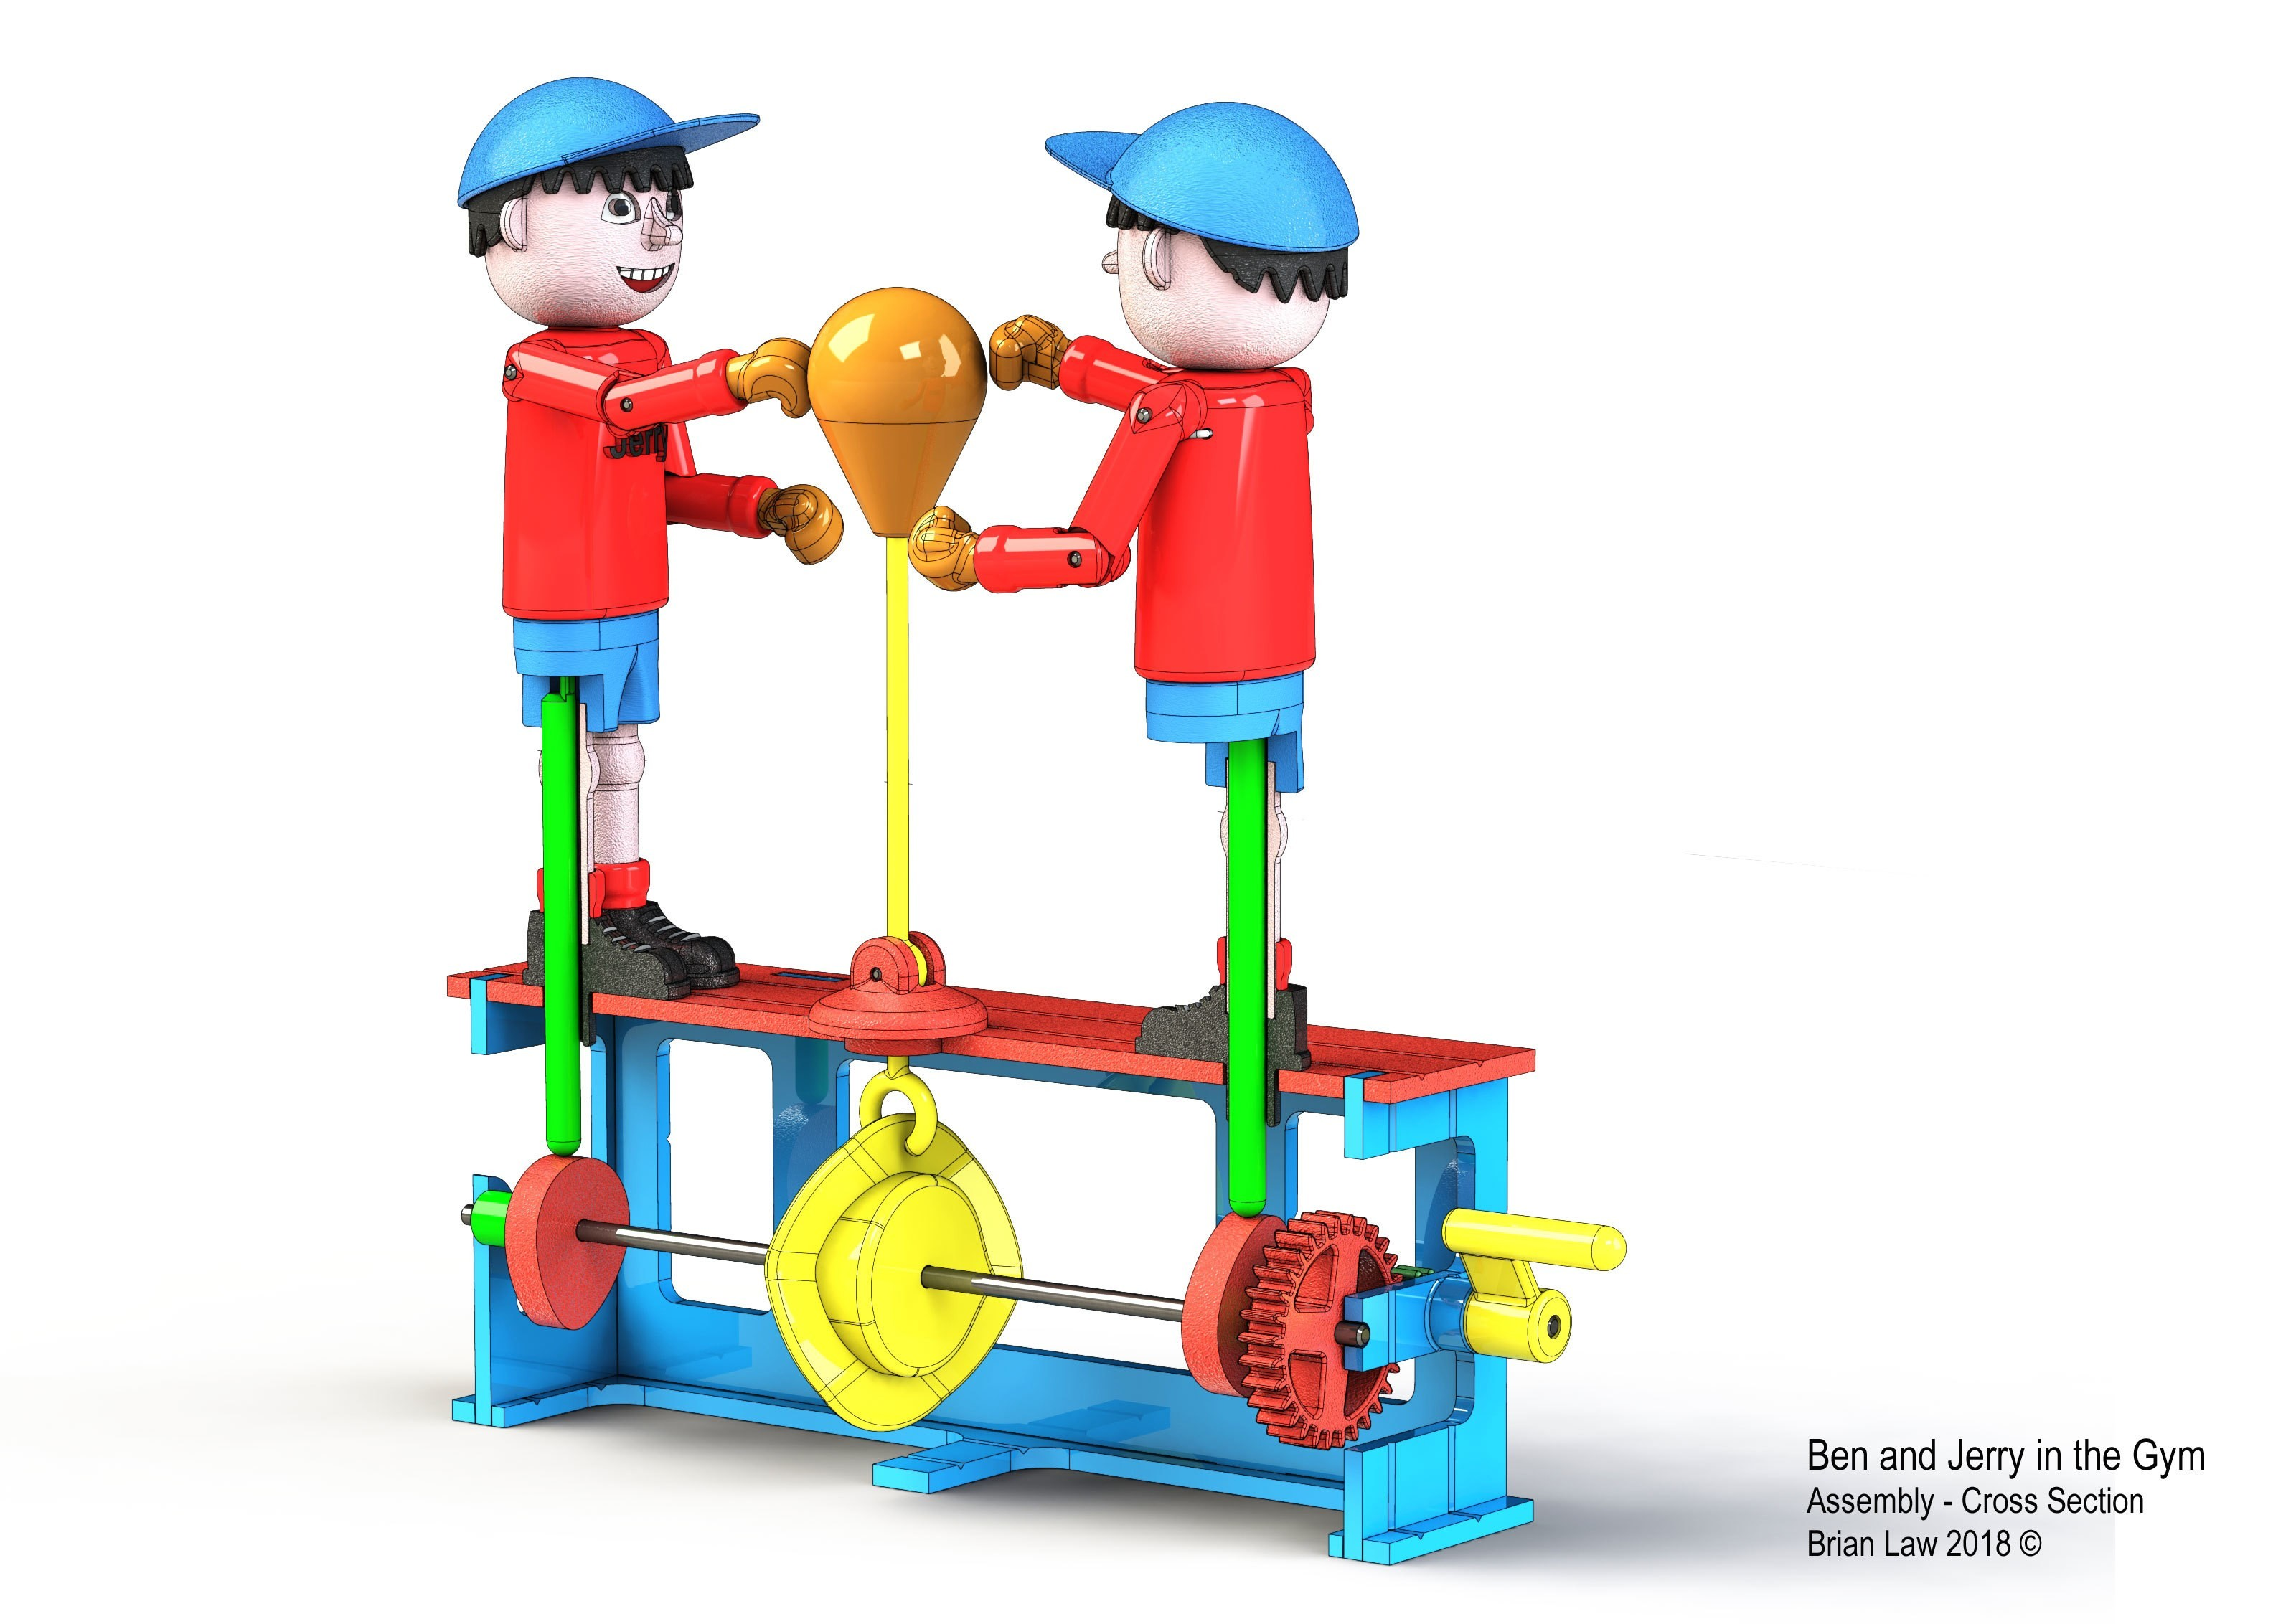 Ben-and-Jerry-2.jpg Download free STL file Ben and Jerry at the Gymnasium • 3D printer object, woodenclocks